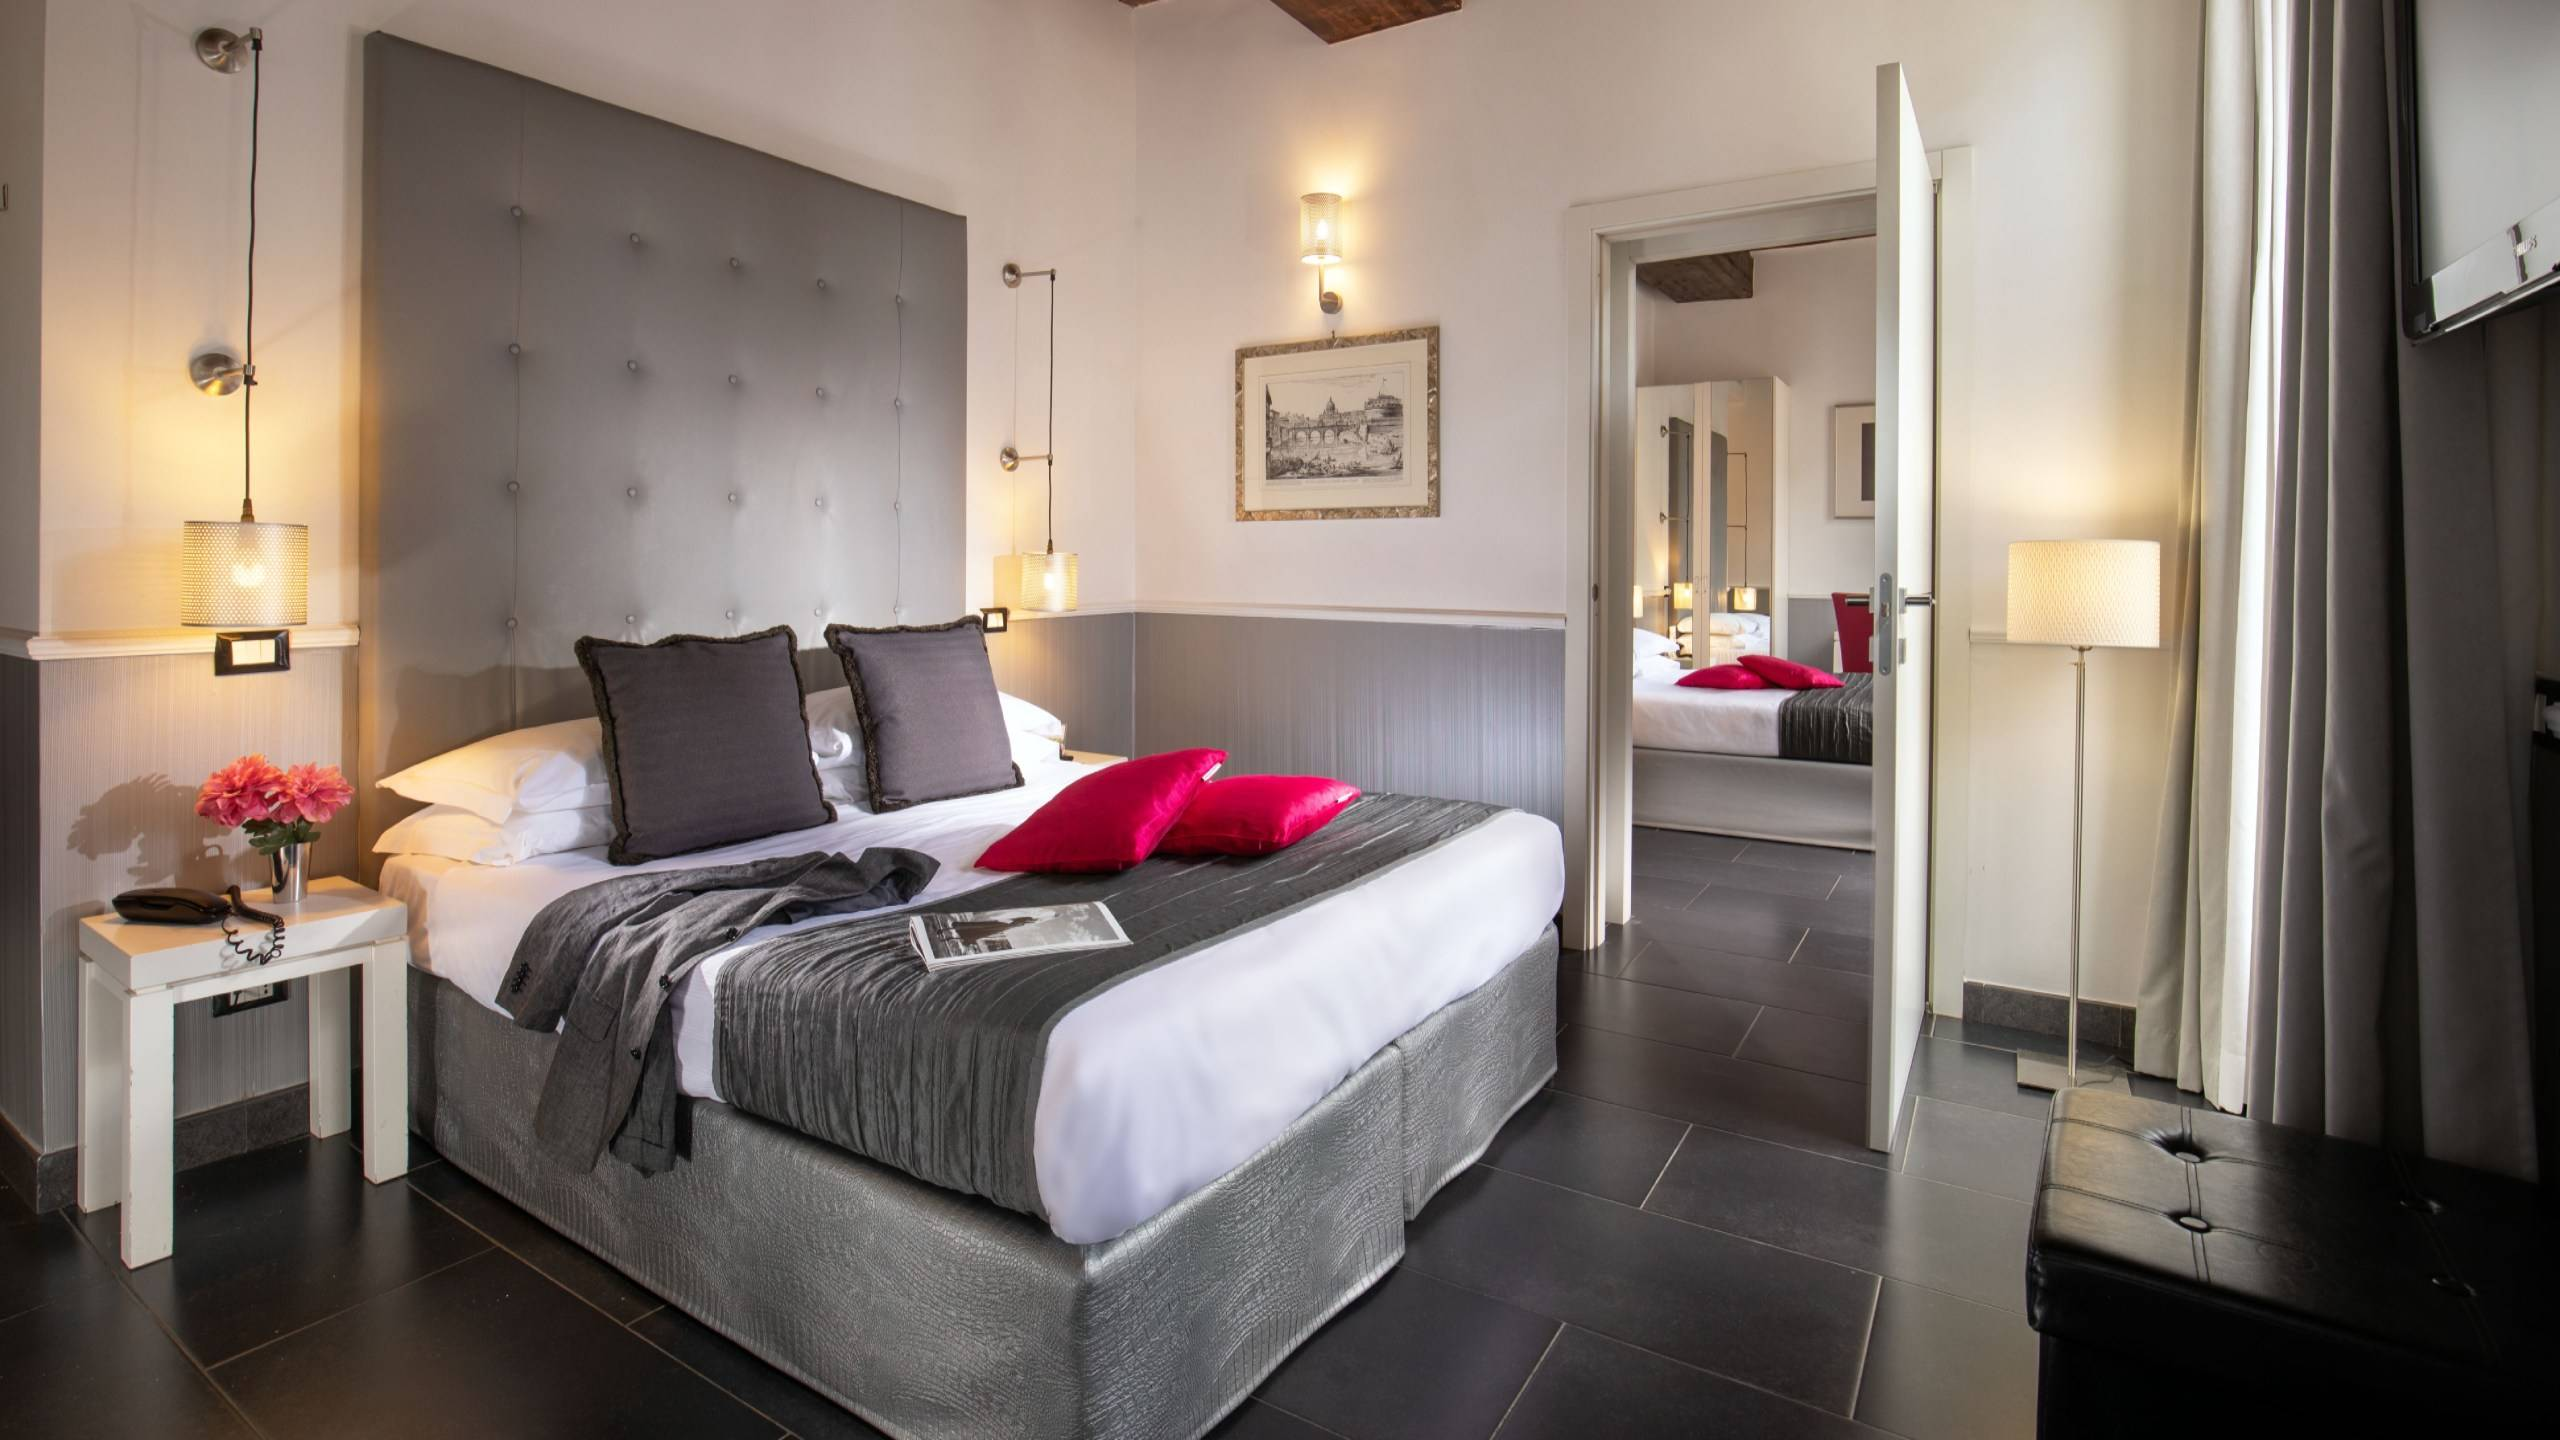 stay-inn-roma-foto-nuove-2020-21